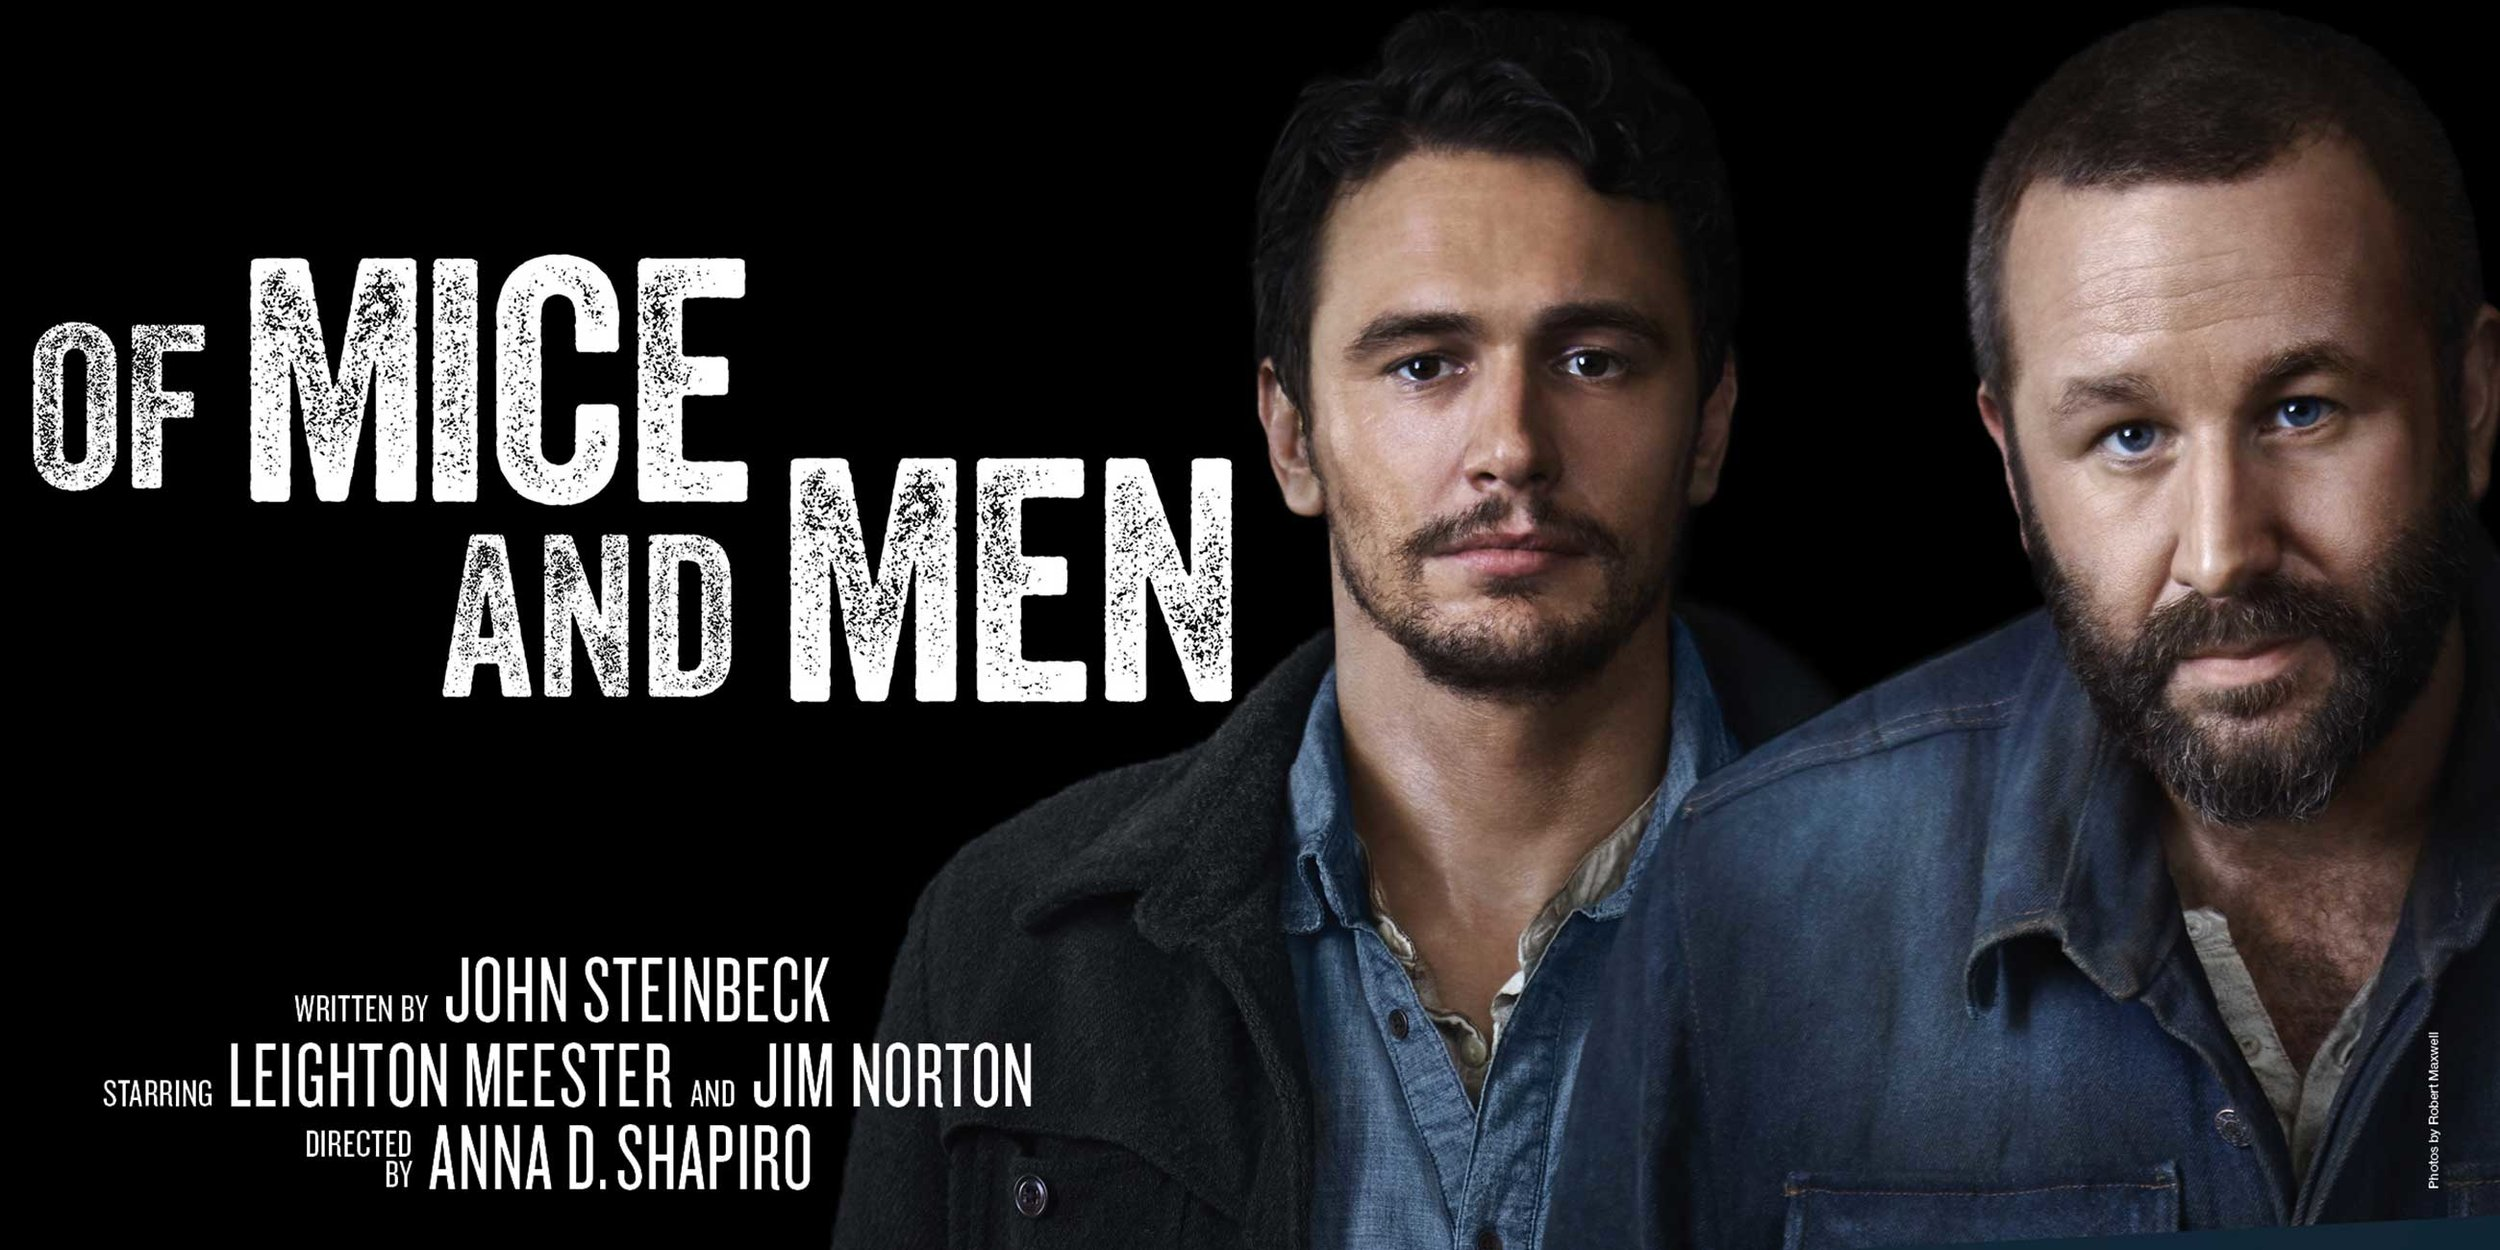 OF MICE AND MEN    LONGACRE THEATRE, BROADWAY   March 19th, 2014 through July 27th, 2014  WRITER: JOHN STEINBECK  STARRING: JAMES FRANCO AND CHRIS O'DOWD  DIRECTOR: Anna D. Shapiro  Nominee: TONY AWARD  Winner : THEATRE WORLD   Mice and Men Online